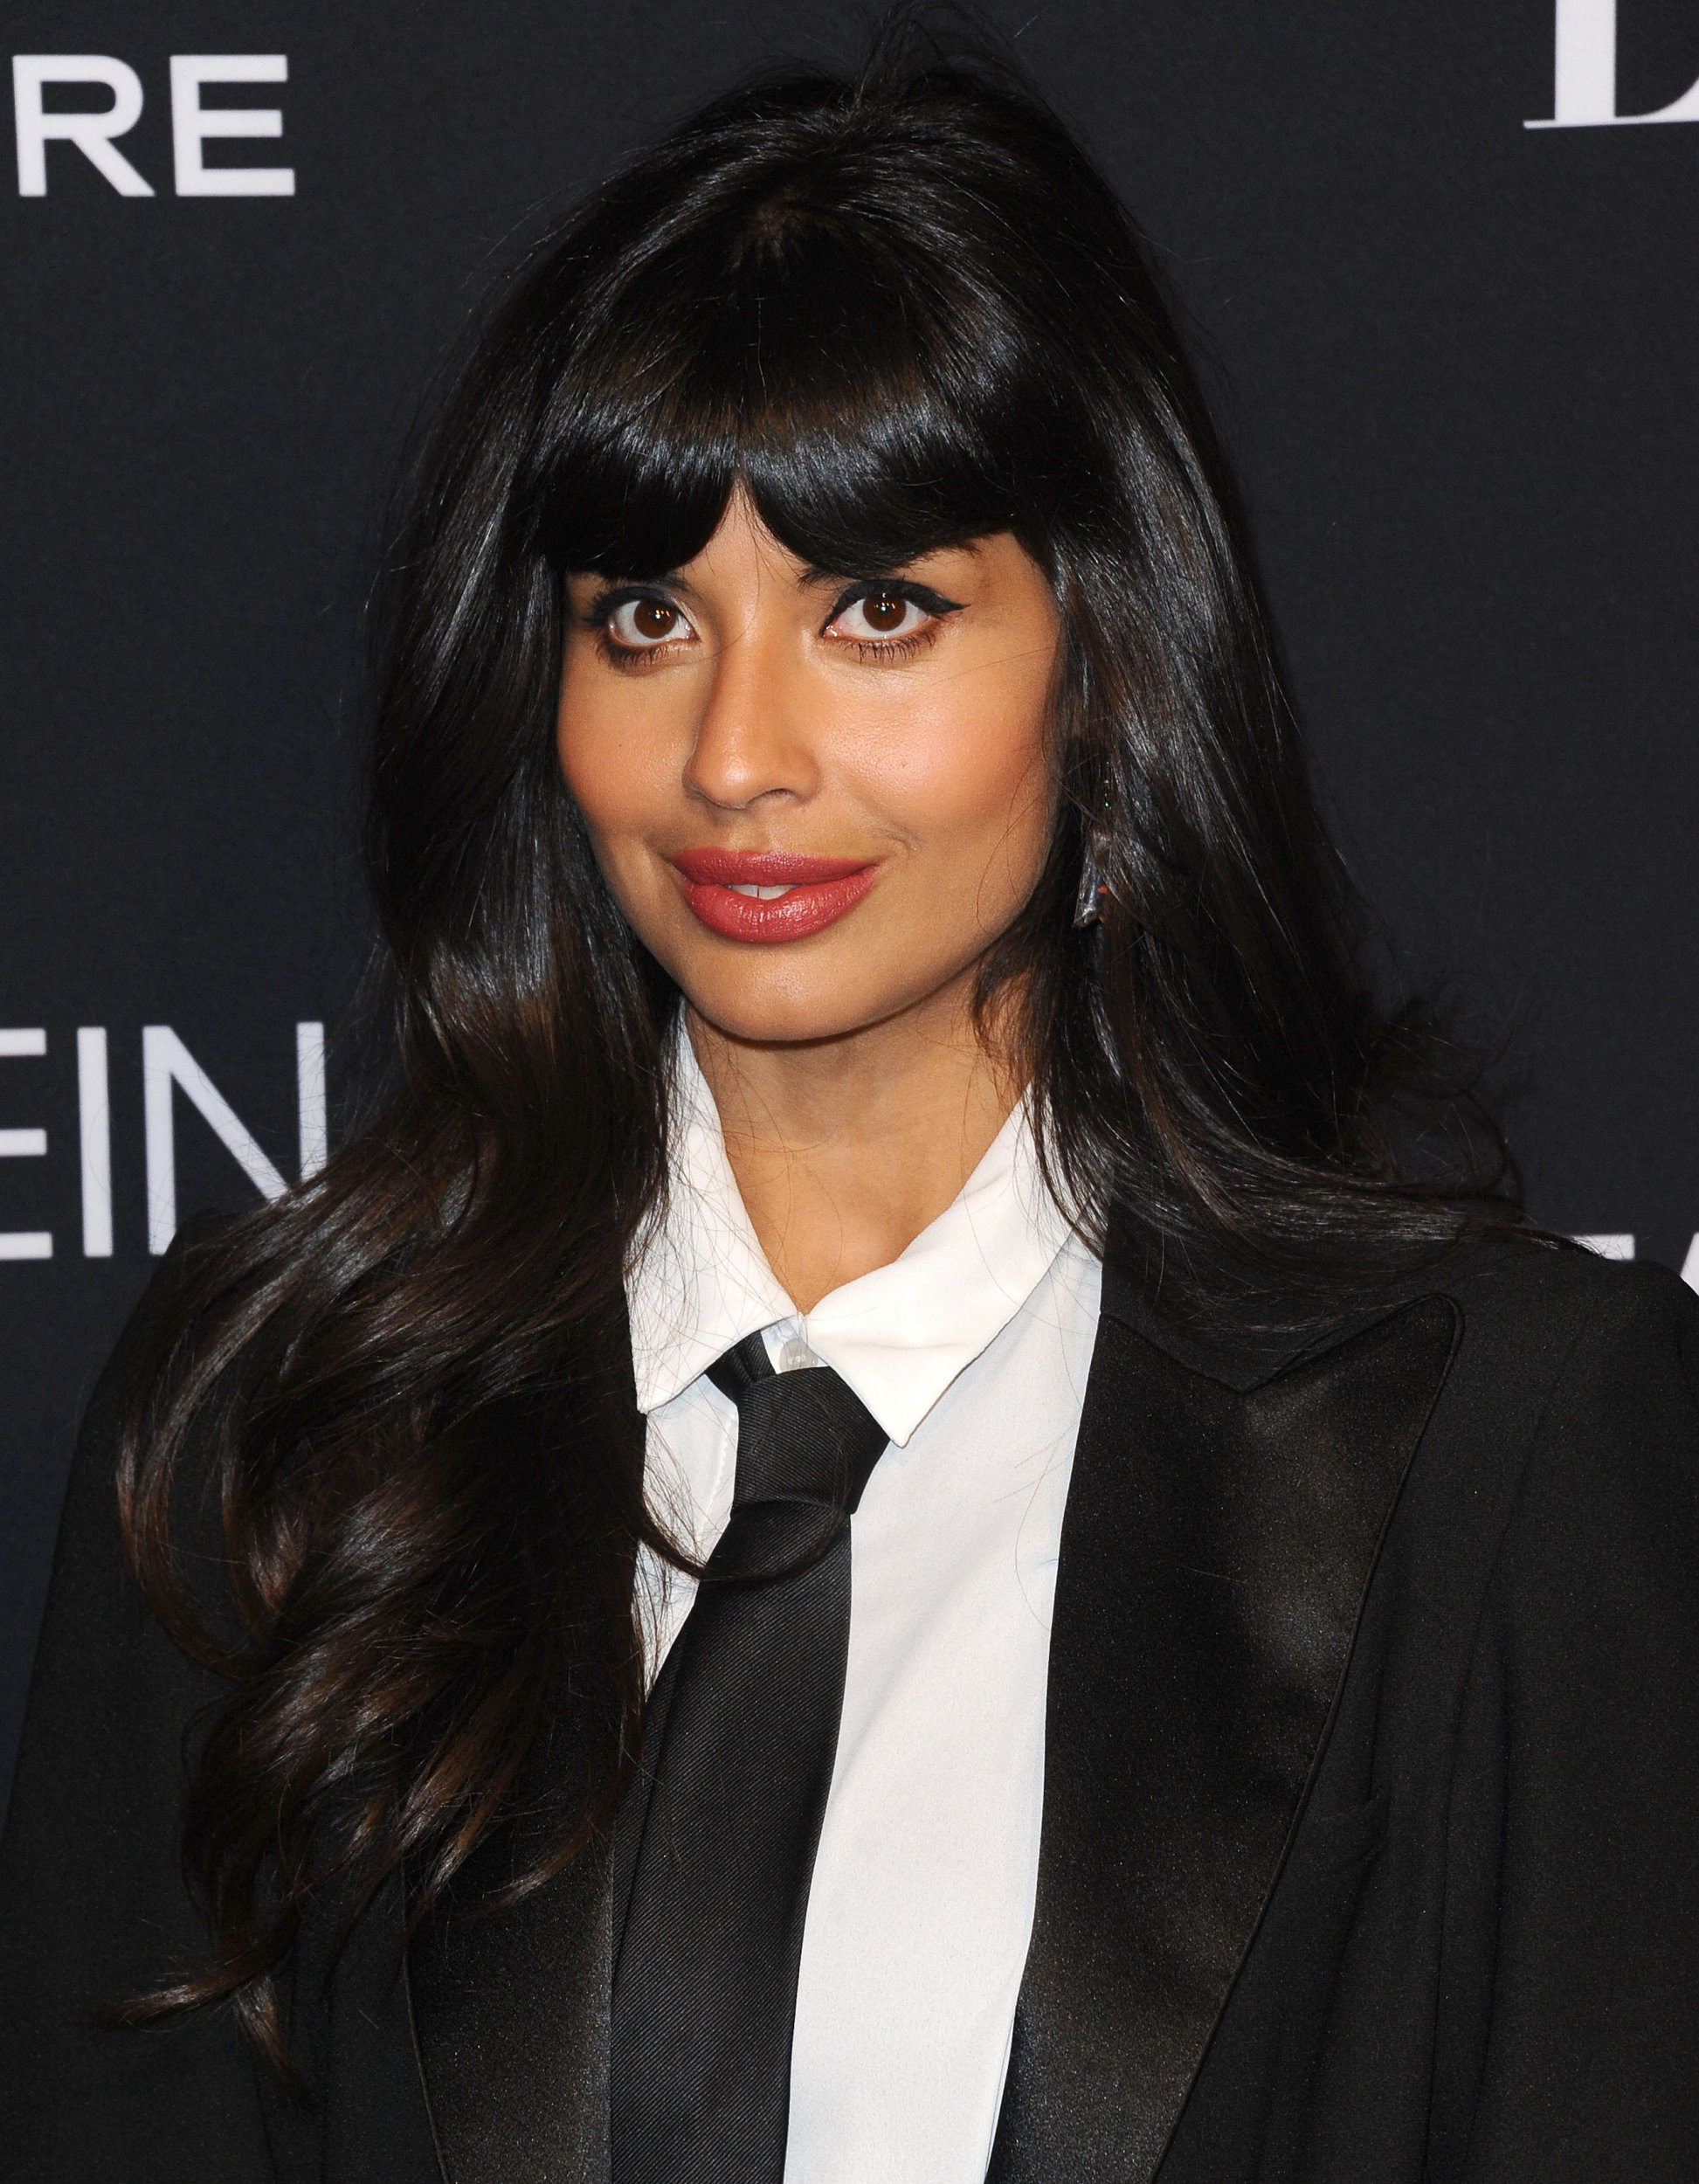 The Good Place star and 'Feminist-in-progress' Jameela Jamil TV shows, age and boyfriend